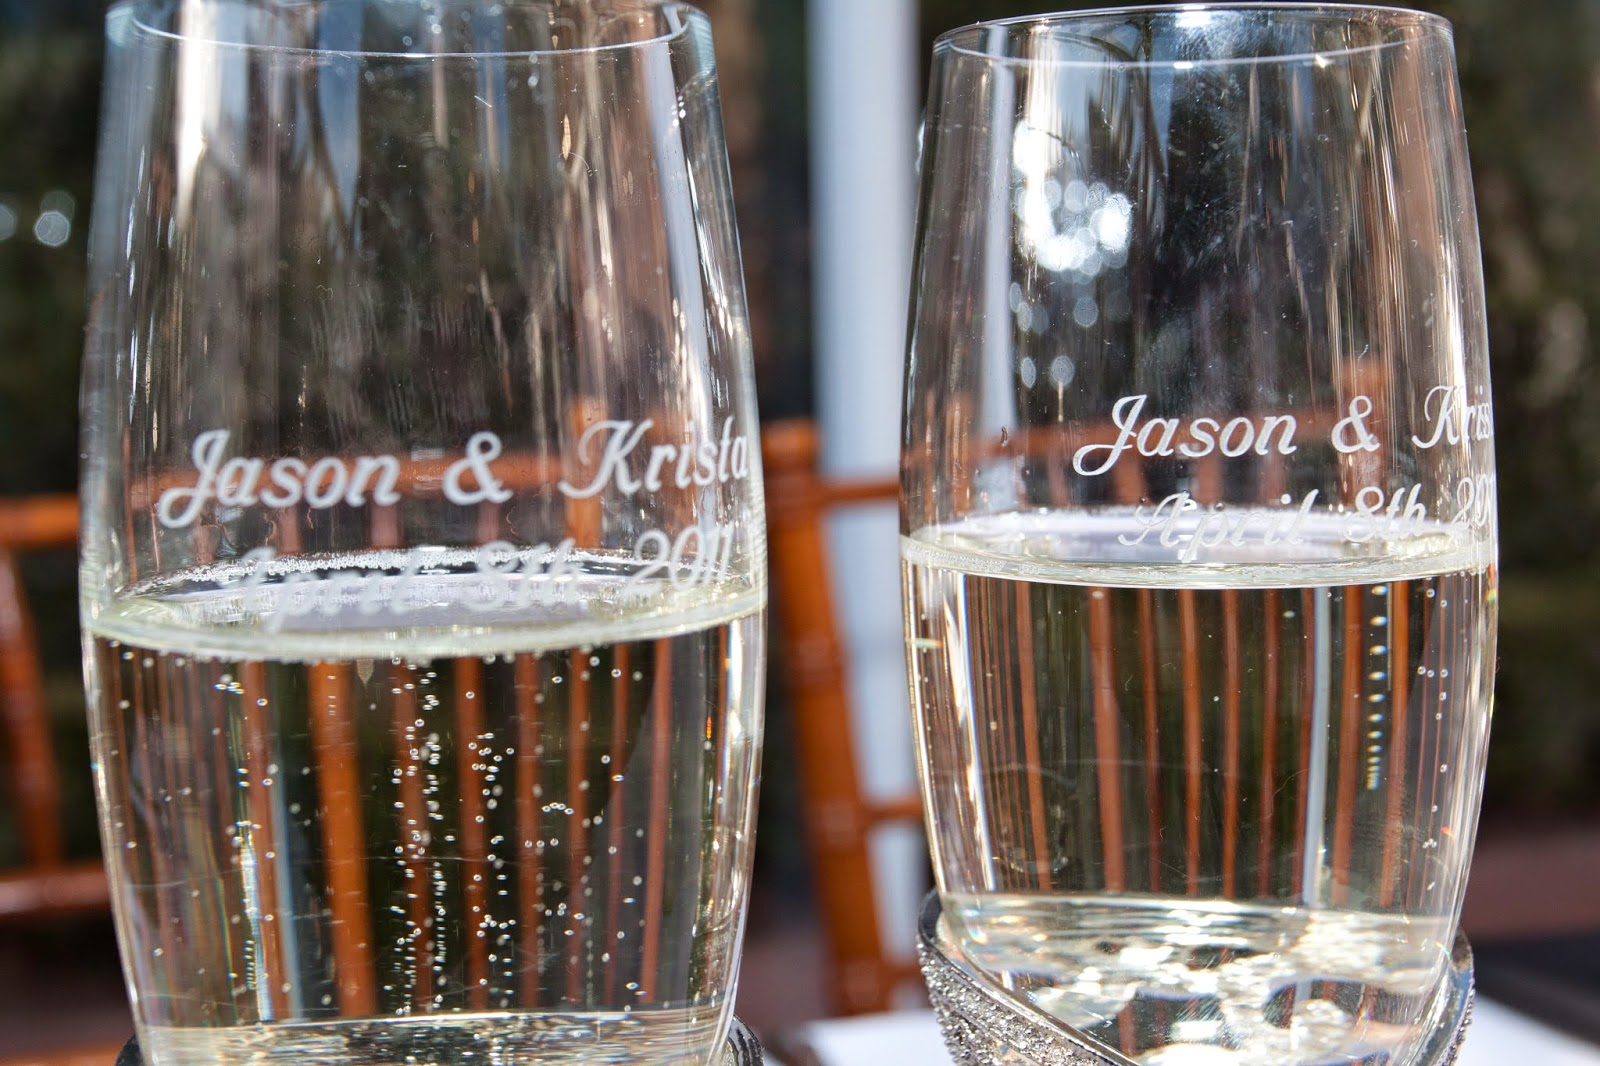 Save your champagne flutes from your wedding to bring out every year on your anniversary for a toast www.thebrighterwriter.blogspot.com #anniversarytradition